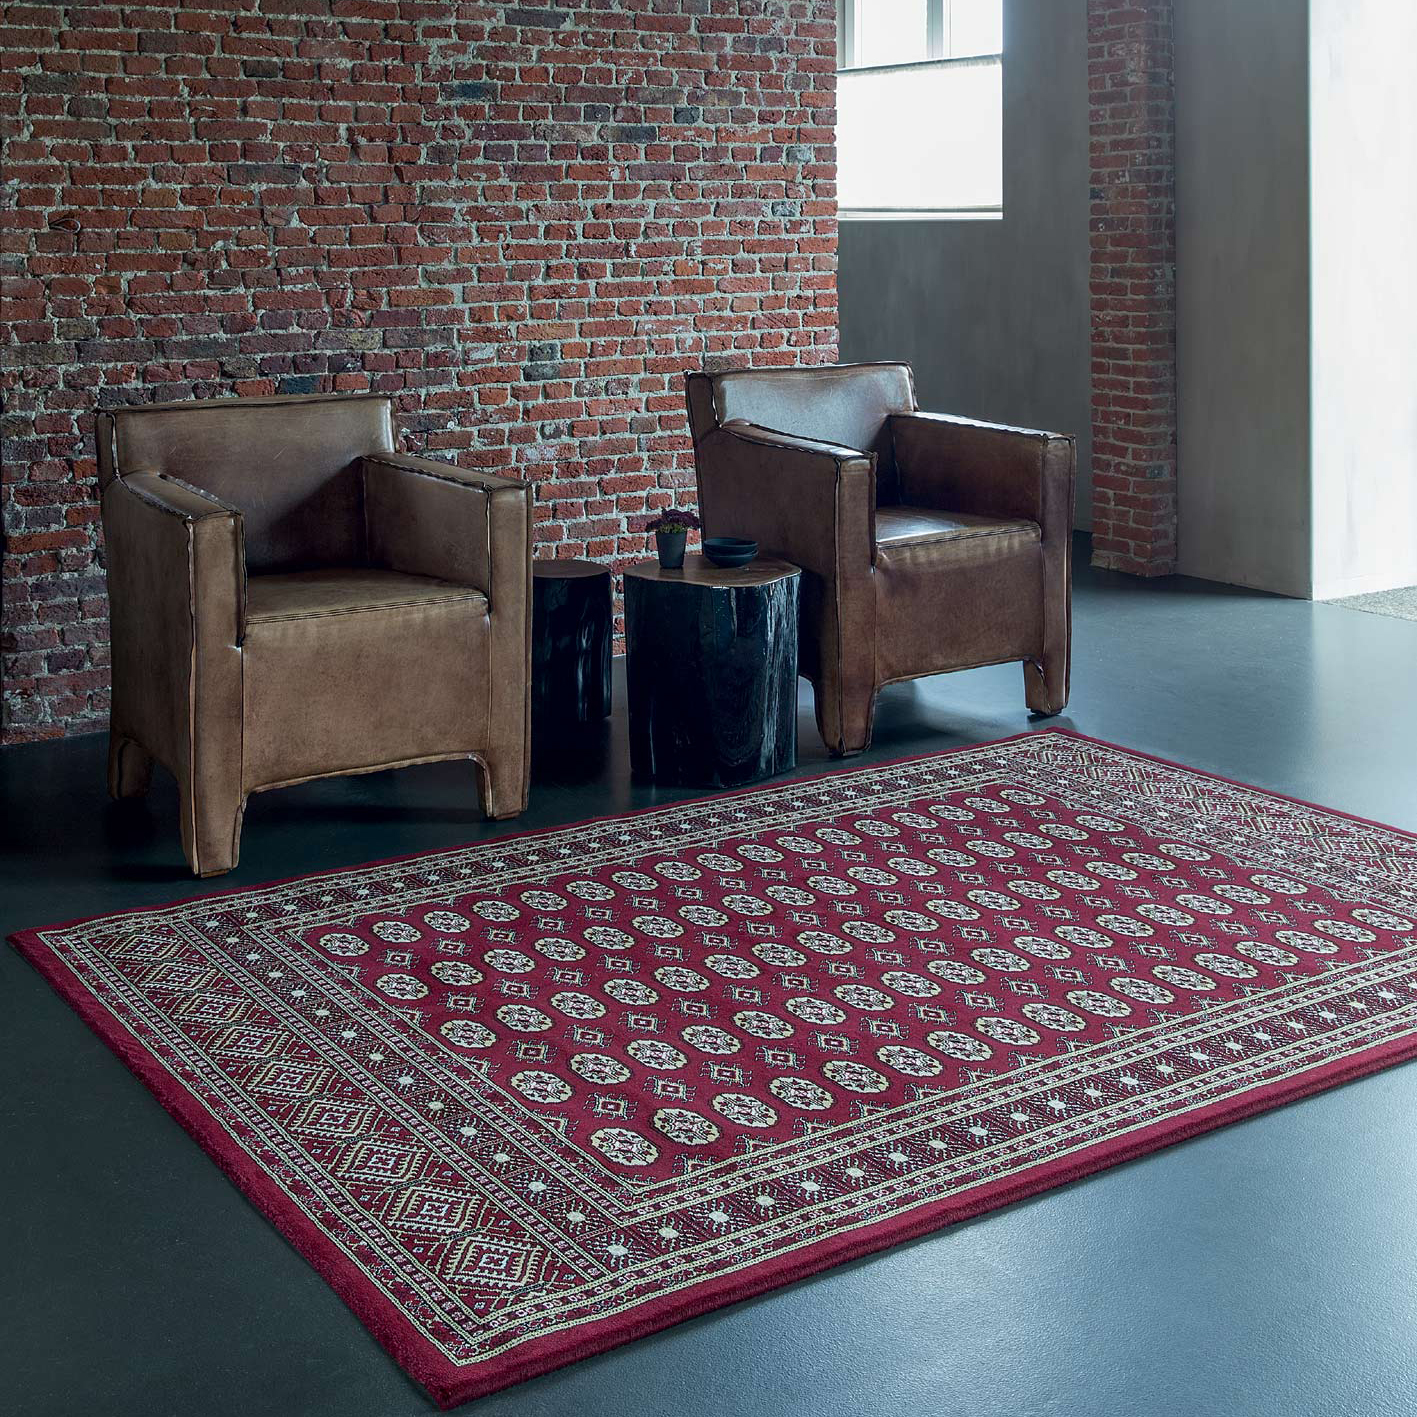 Noble Art Rugs Buy Online With Huge Savings At The Rug